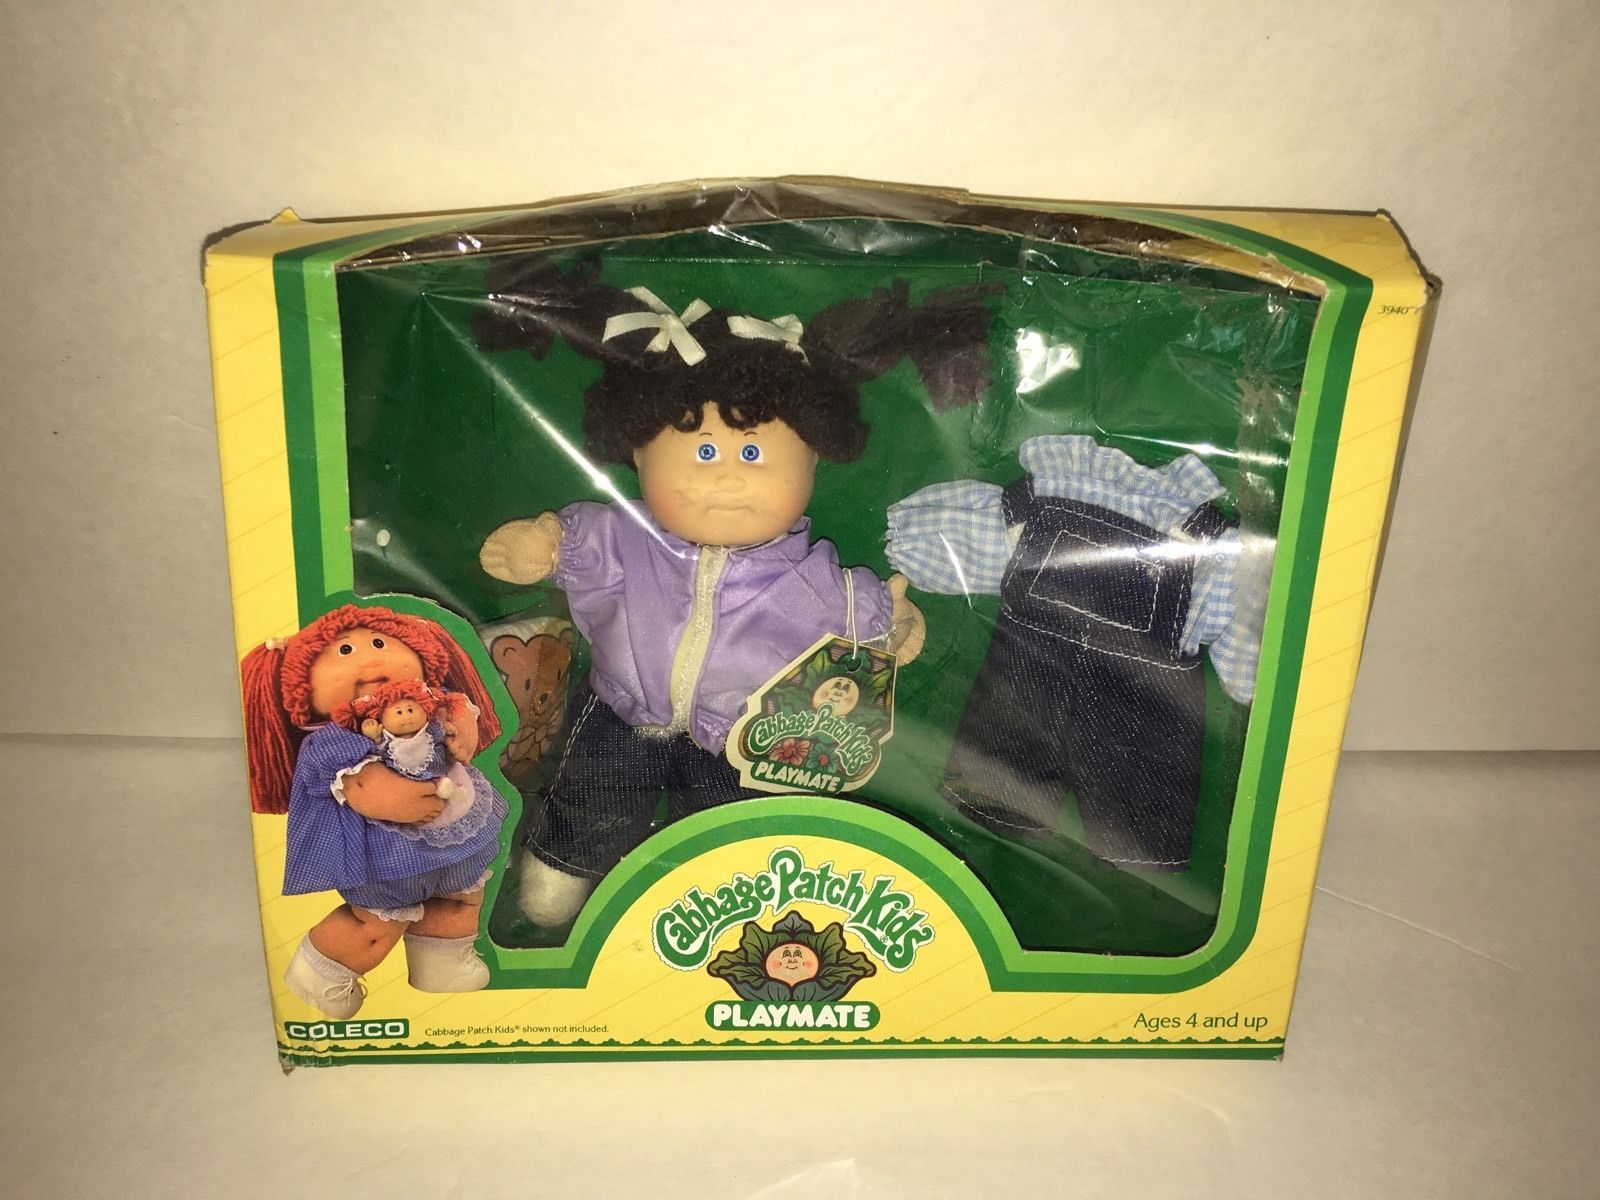 Vtg 1984 Box Cabbage Patch Kids Playmate Mini Doll 5 Girl Denim Outfit Set Dolls Bears Dolls Cabbage Patch Kids Cabbage Patch Babies Cabbage Patch Dolls